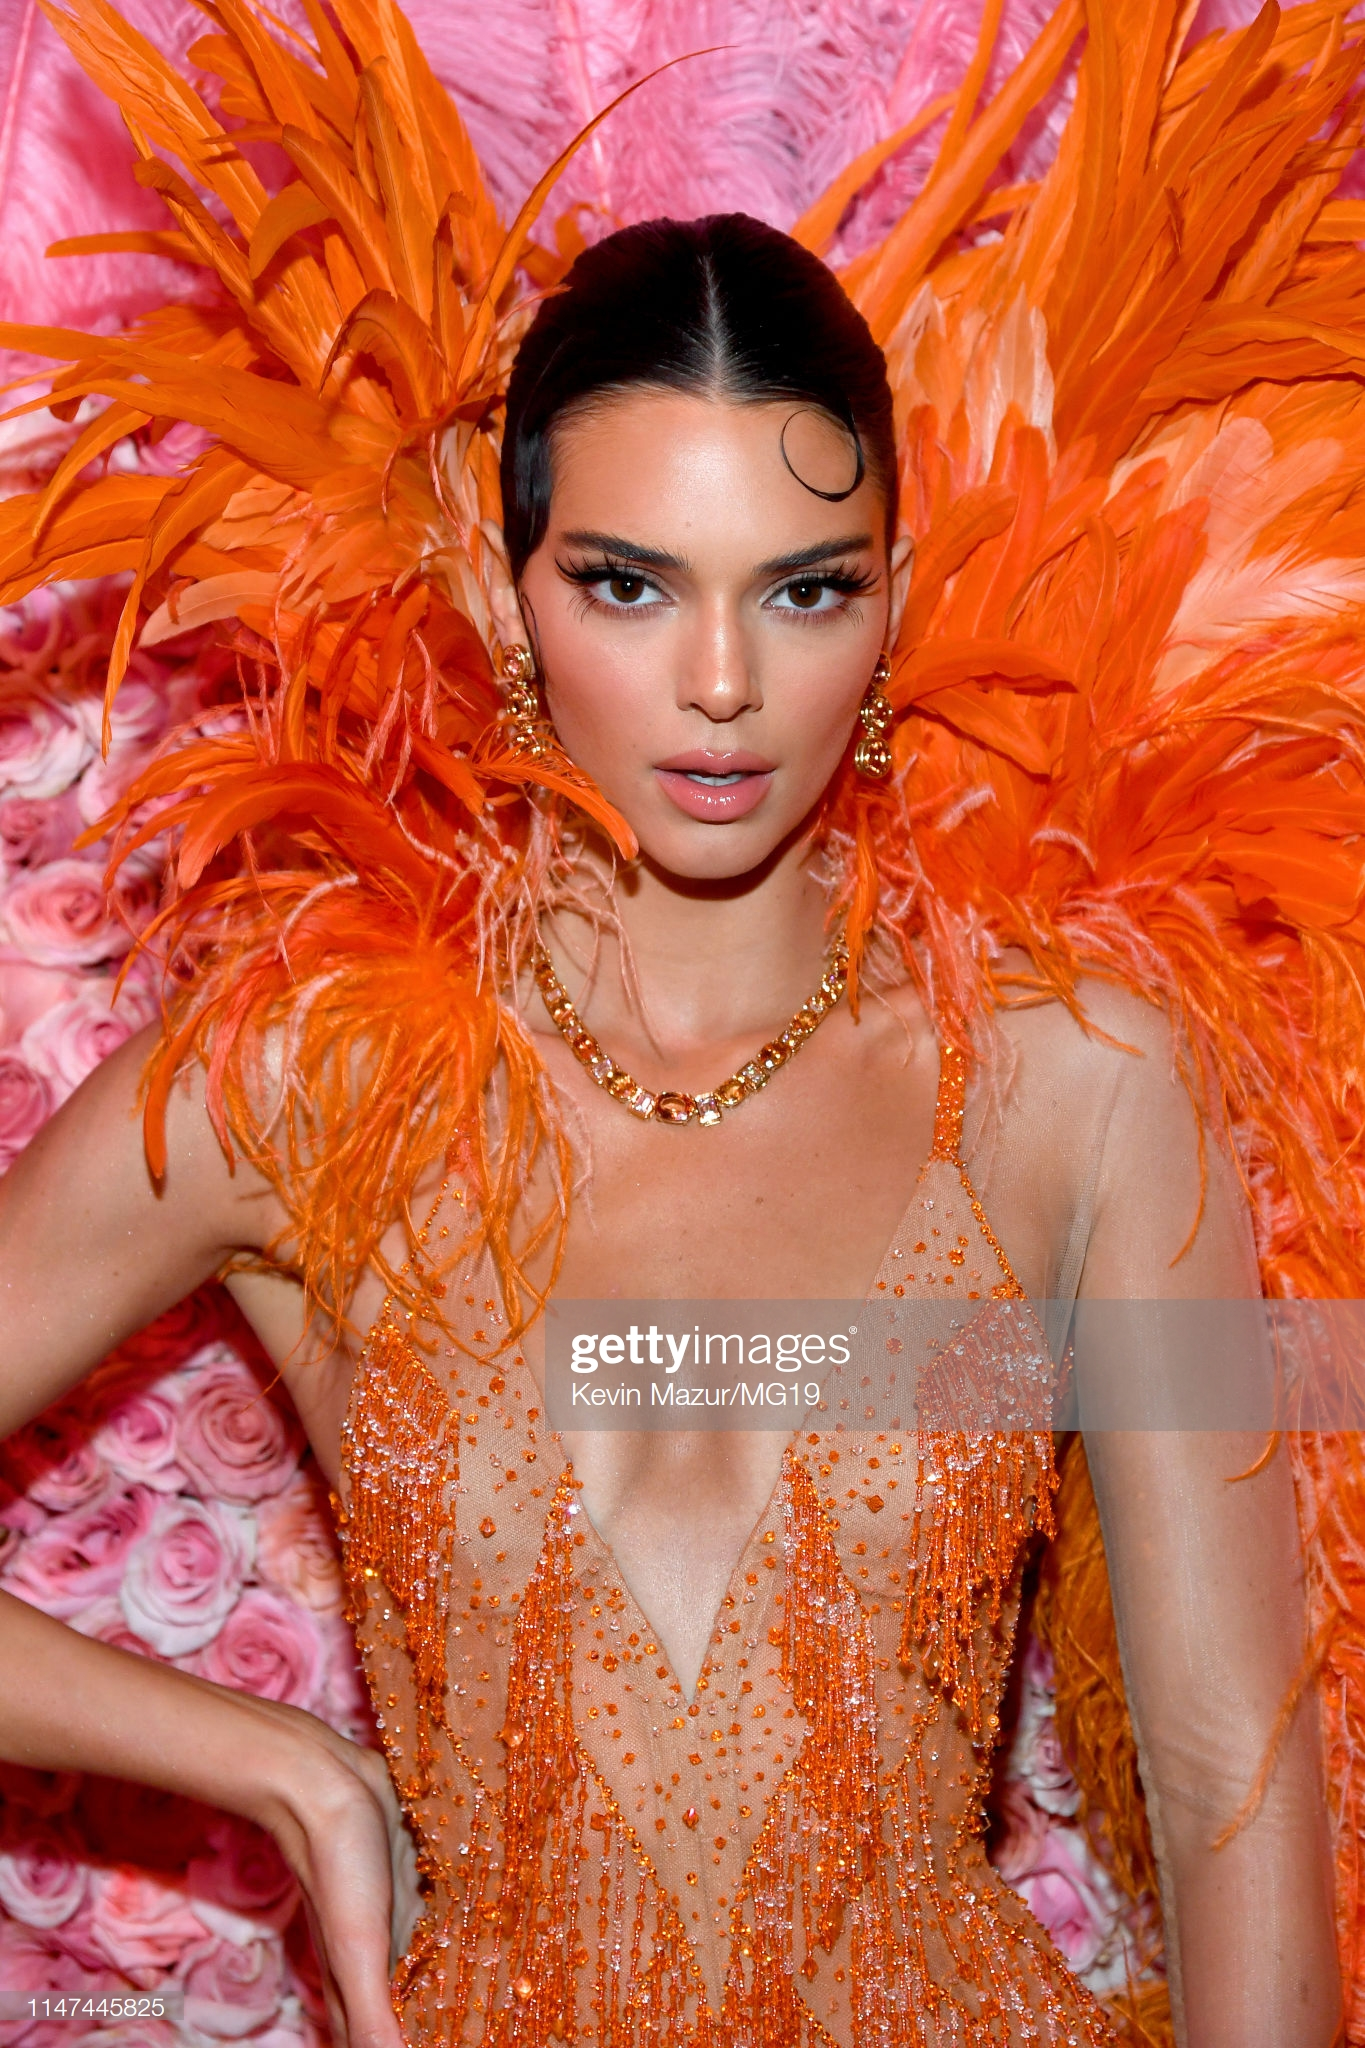 NEW YORK, NEW YORK - MAY 06: Kendall Jenner attends The 2019 Met Gala Celebrating Camp: Notes on Fashion at Metropolitan Museum of Art on May 06, 2019 in New York City. (Photo by Kevin Mazur/MG19/Getty Images for The Met Museum/Vogue)